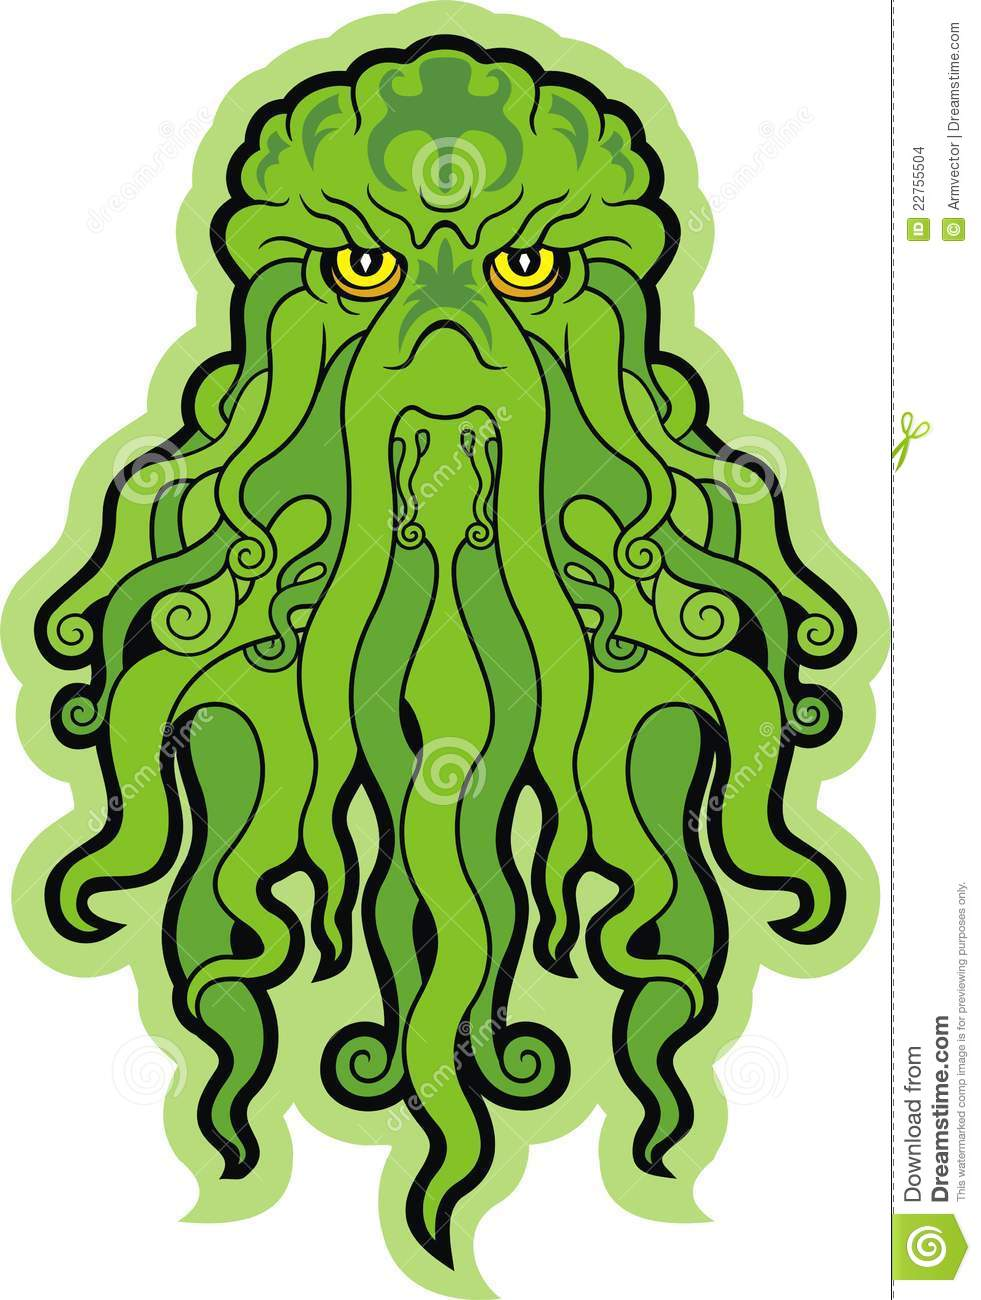 Sea monster clipart.